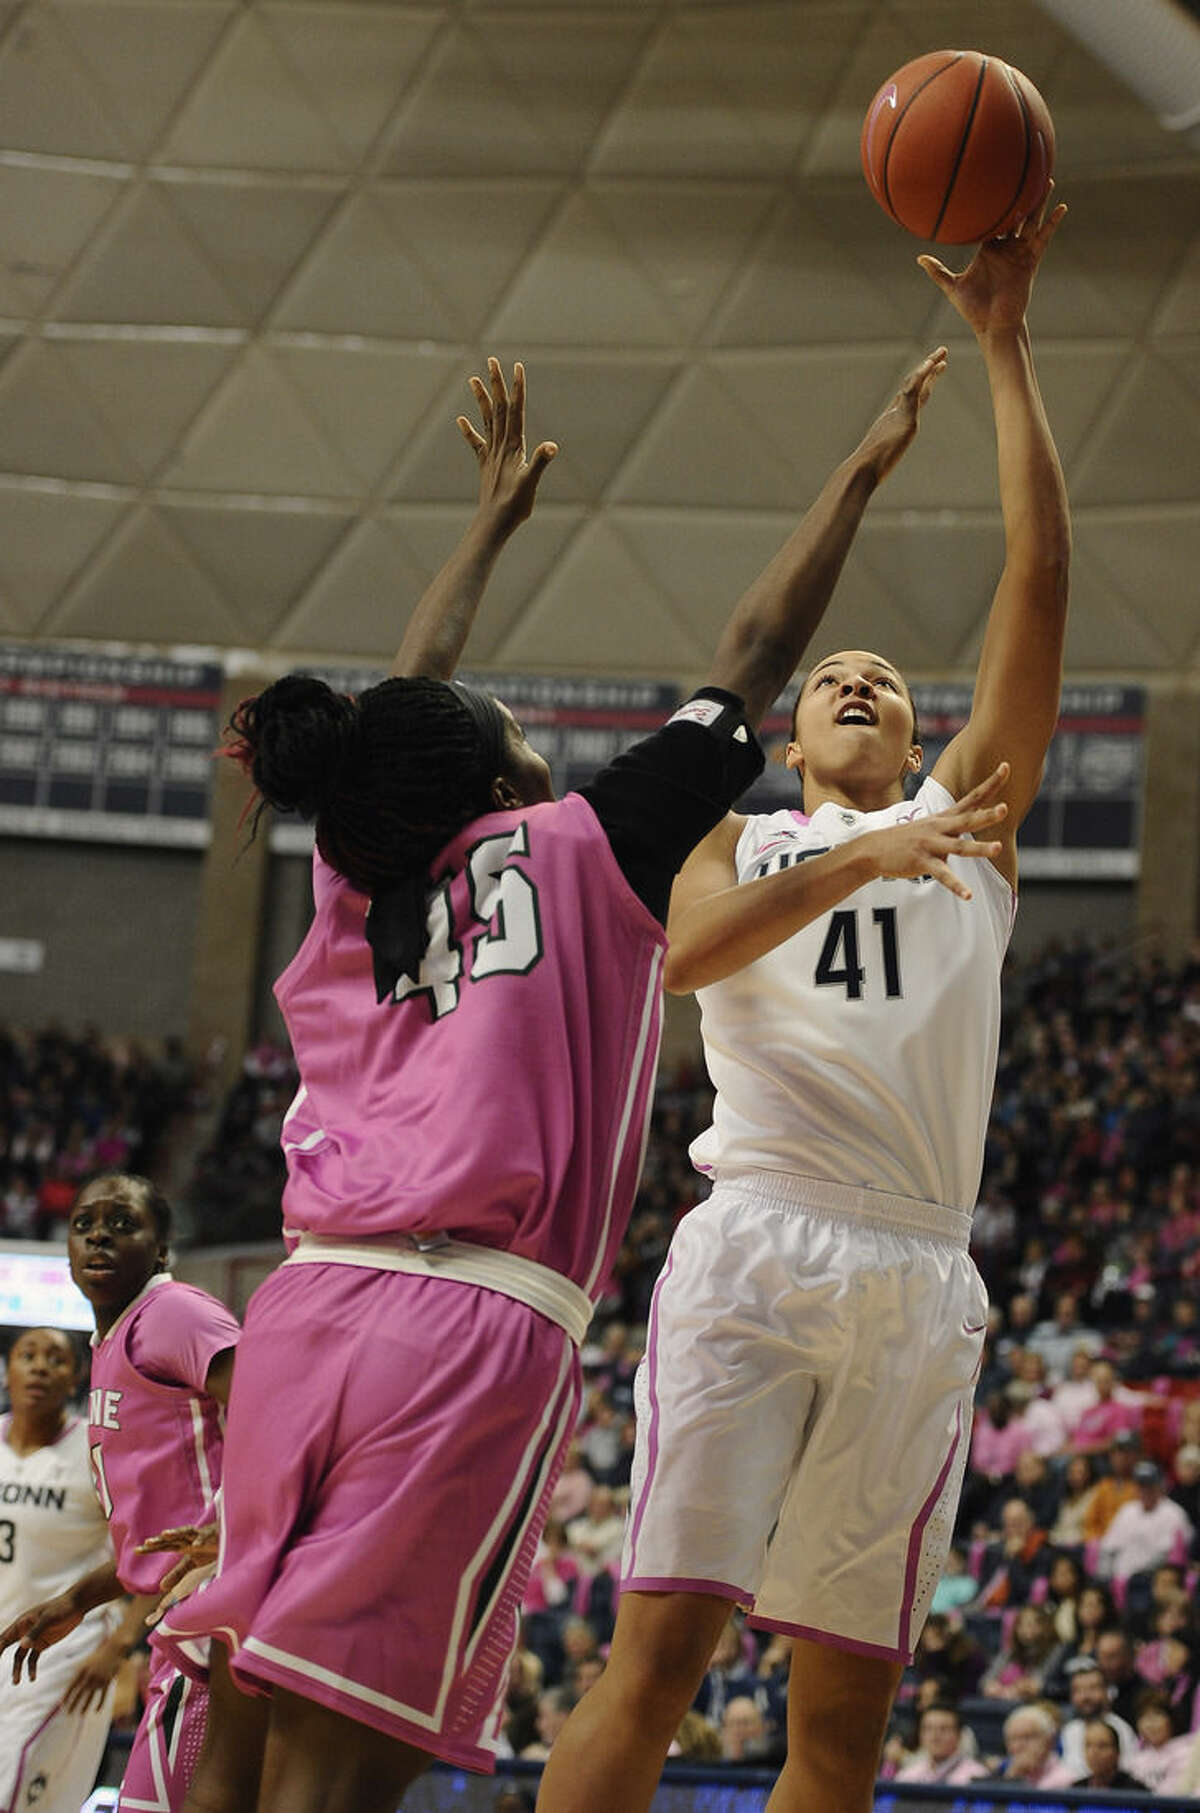 Connecticut's Kiah Stokes, right, shoots over Tulane's Chinwe Duru, left, during the first half of an NCAA college basketball game, Saturday, Feb. 14, 2015, in Storrs, Conn. (AP Photo/Jessica Hill)